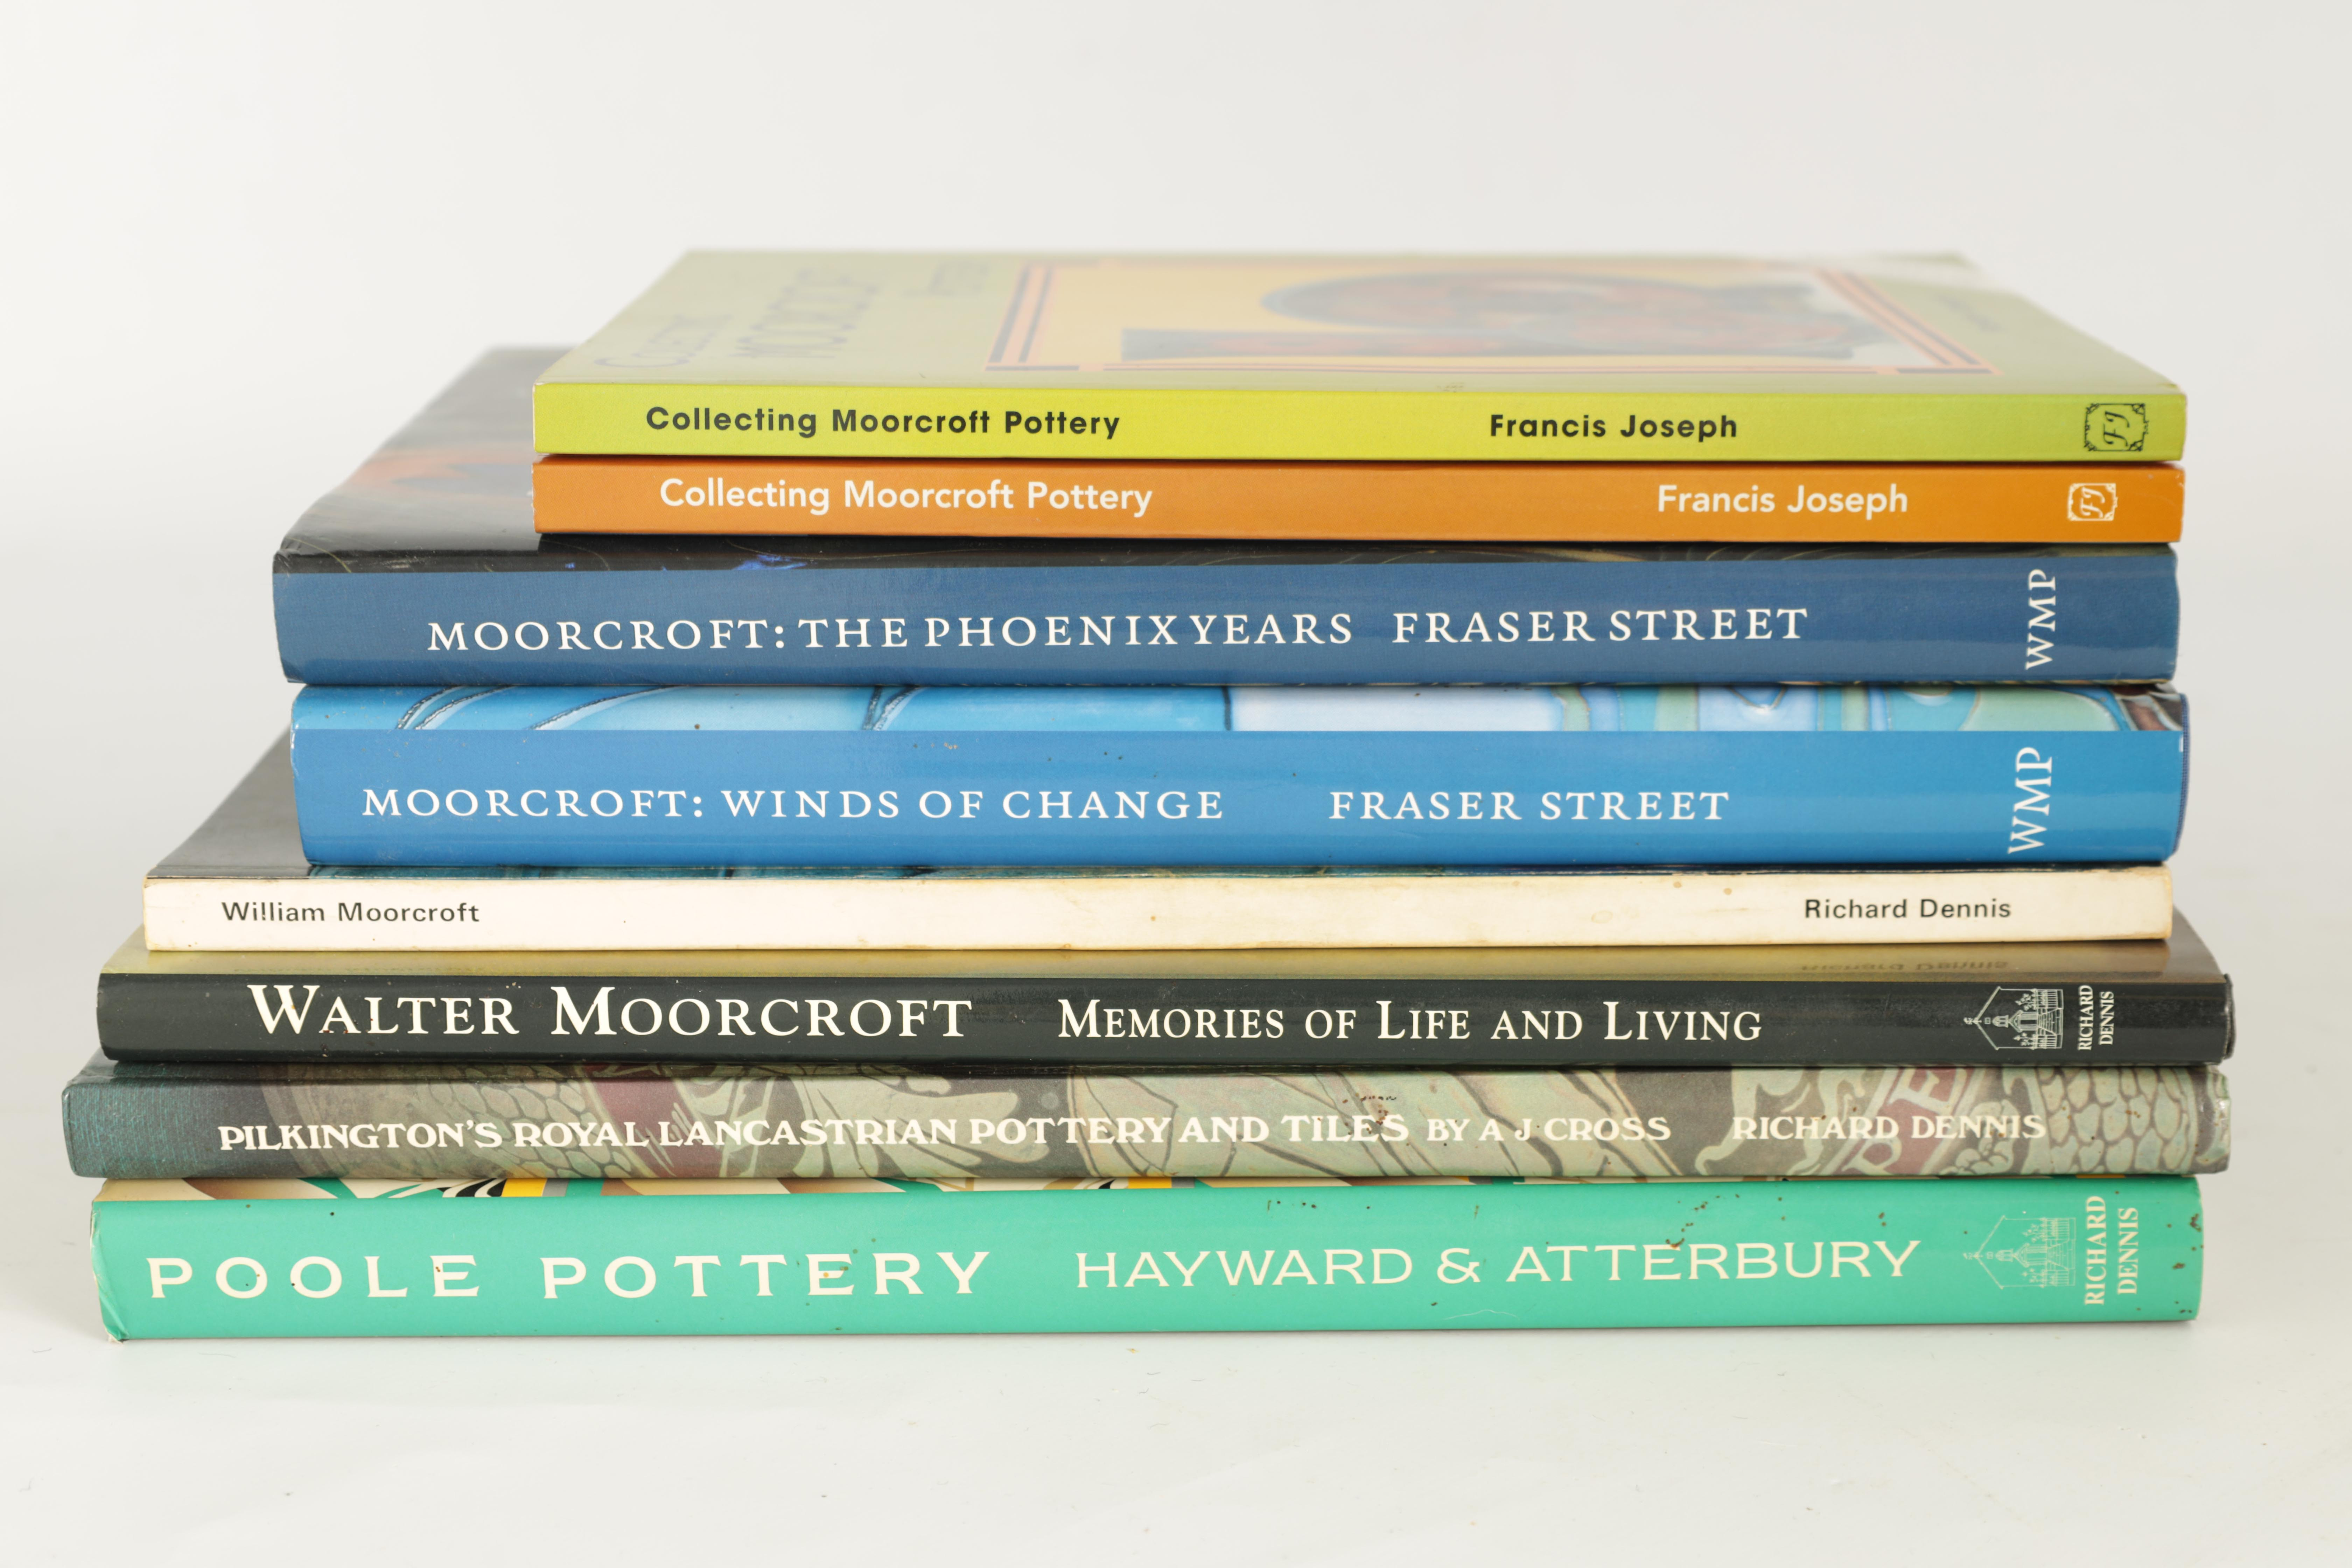 A COLLECTION OF EIGHT CERAMIC REFERENCE BOOKS including Poole pottery by Lesley Haward edited by - Image 9 of 9